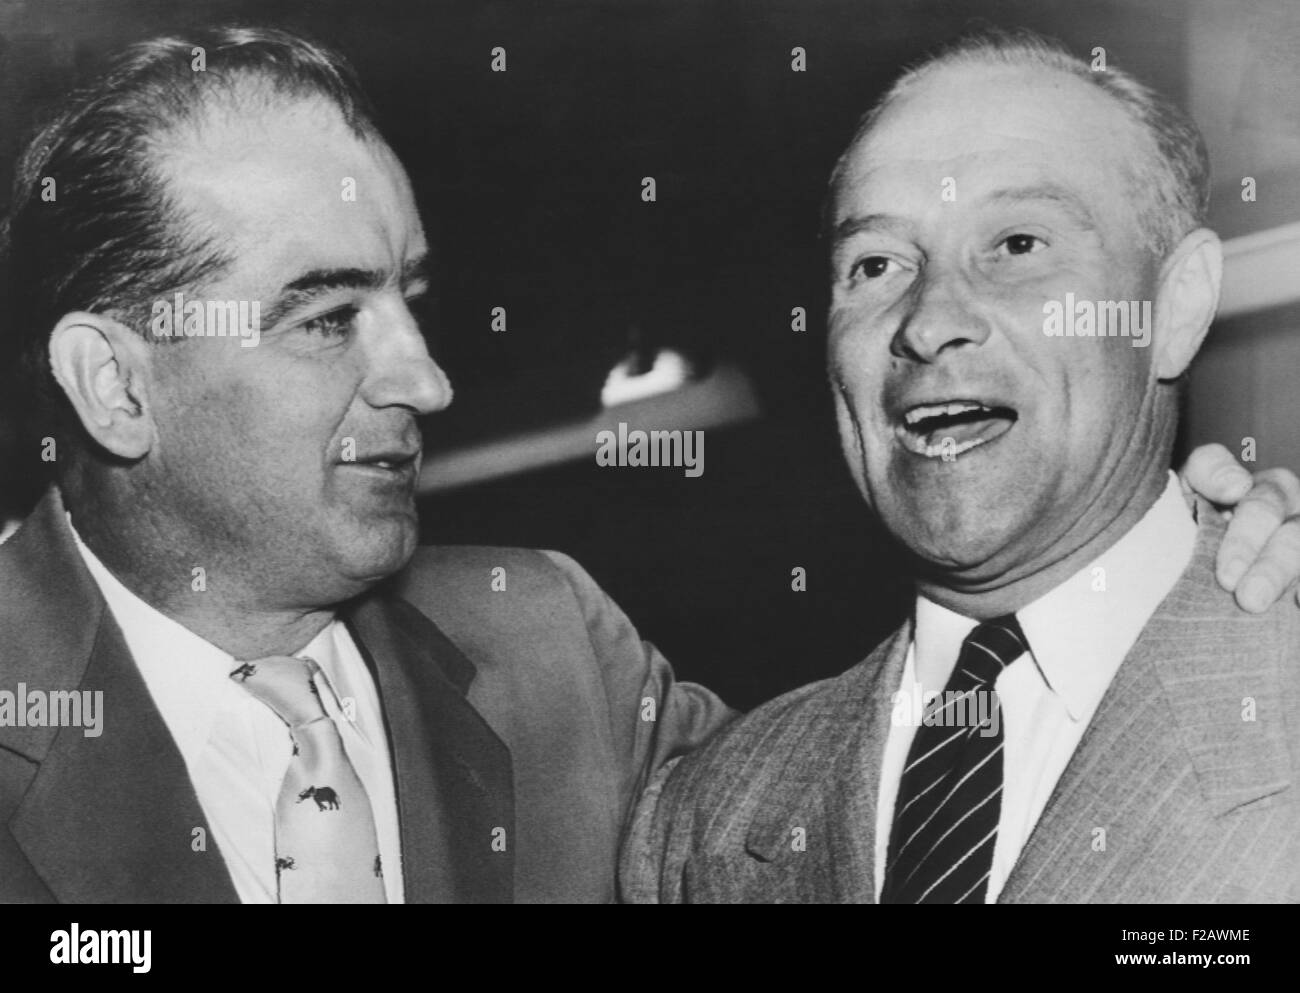 Sen. Joseph McCarthy campaigning with Sen. William Jenner of Indiana. Oct. 21, 1952. Jenner, was a follower of McCarthy - Stock Image